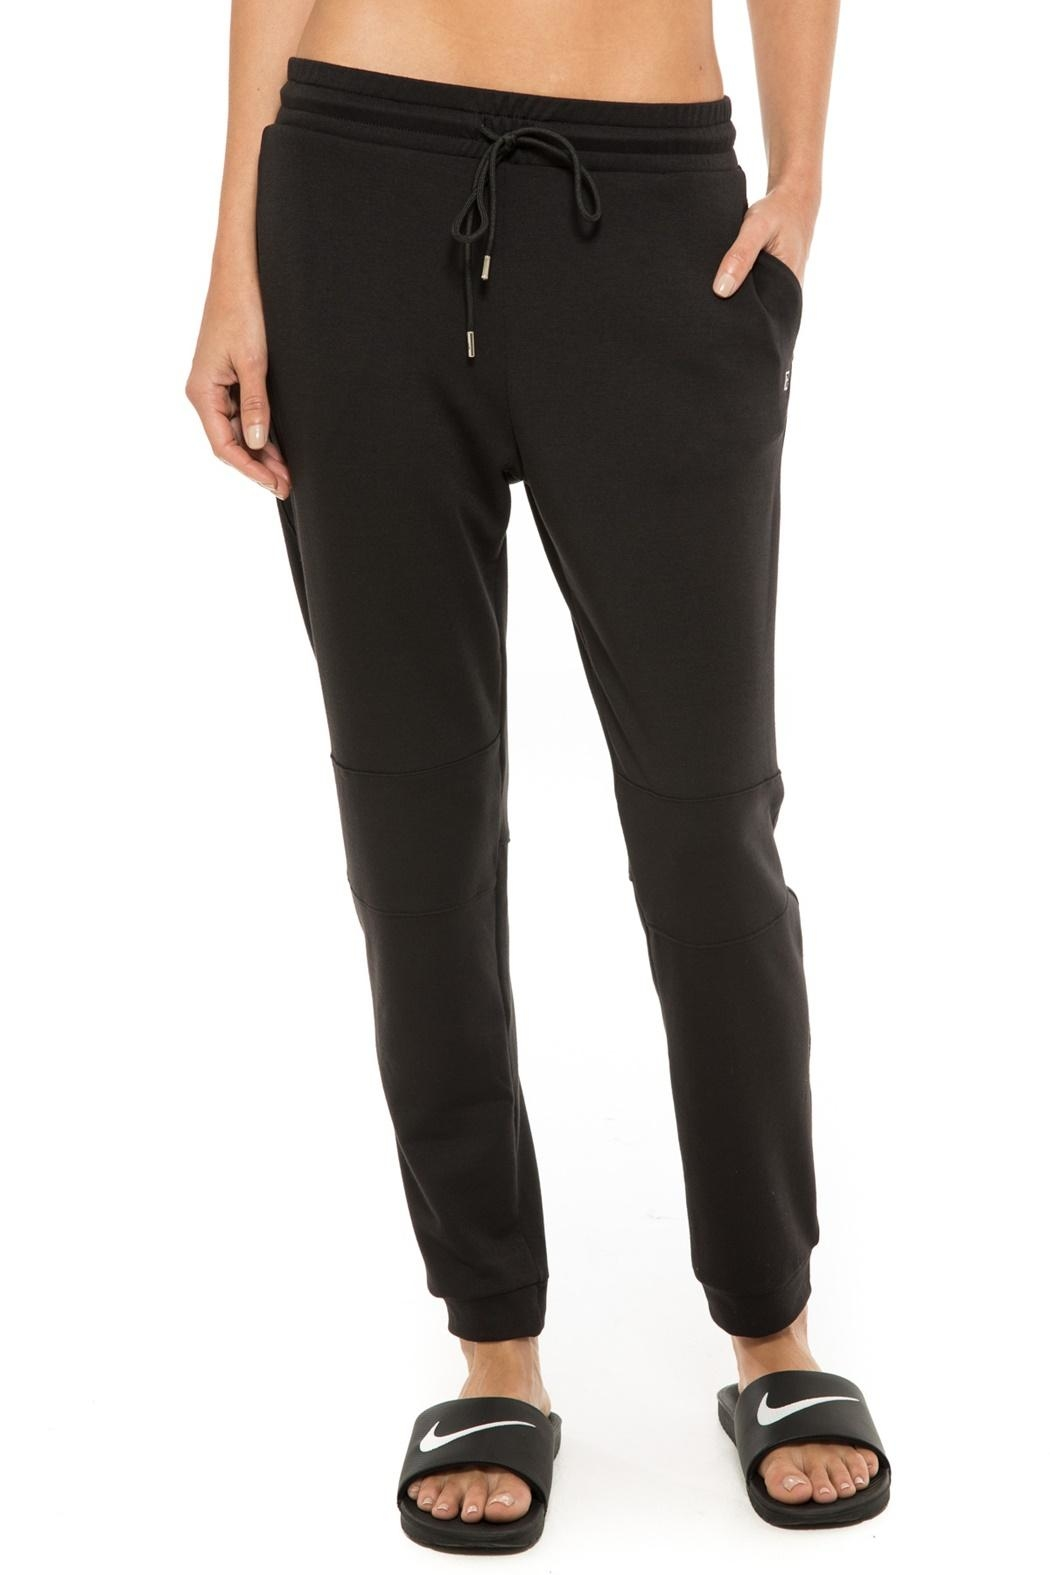 Body Language Juno Sweat Pant - Front Full Image